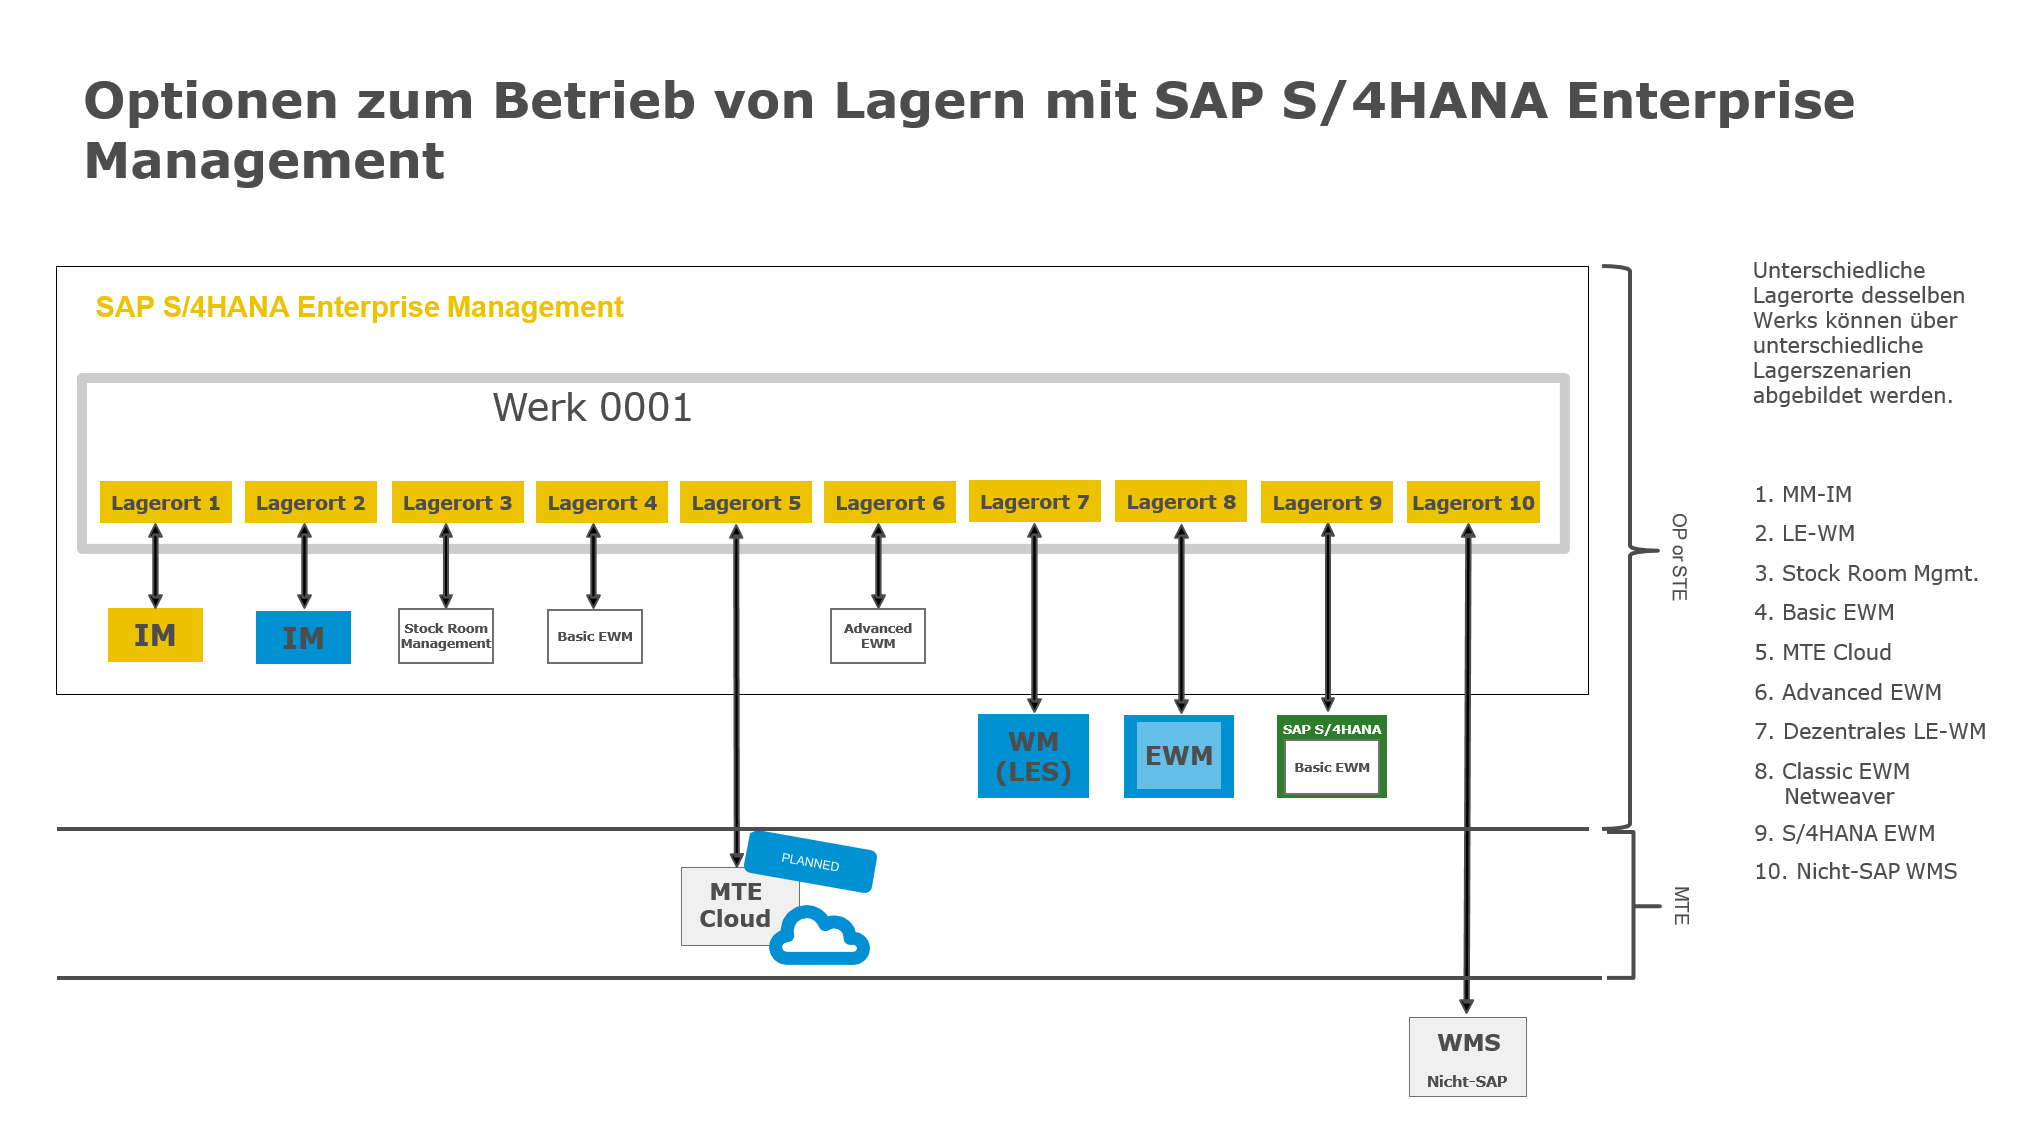 Blog Grafik Warehouse Management Optionen in SAP S4HANA - Warehouse Management ist nun doch unter SAP S/4HANA verfügbar